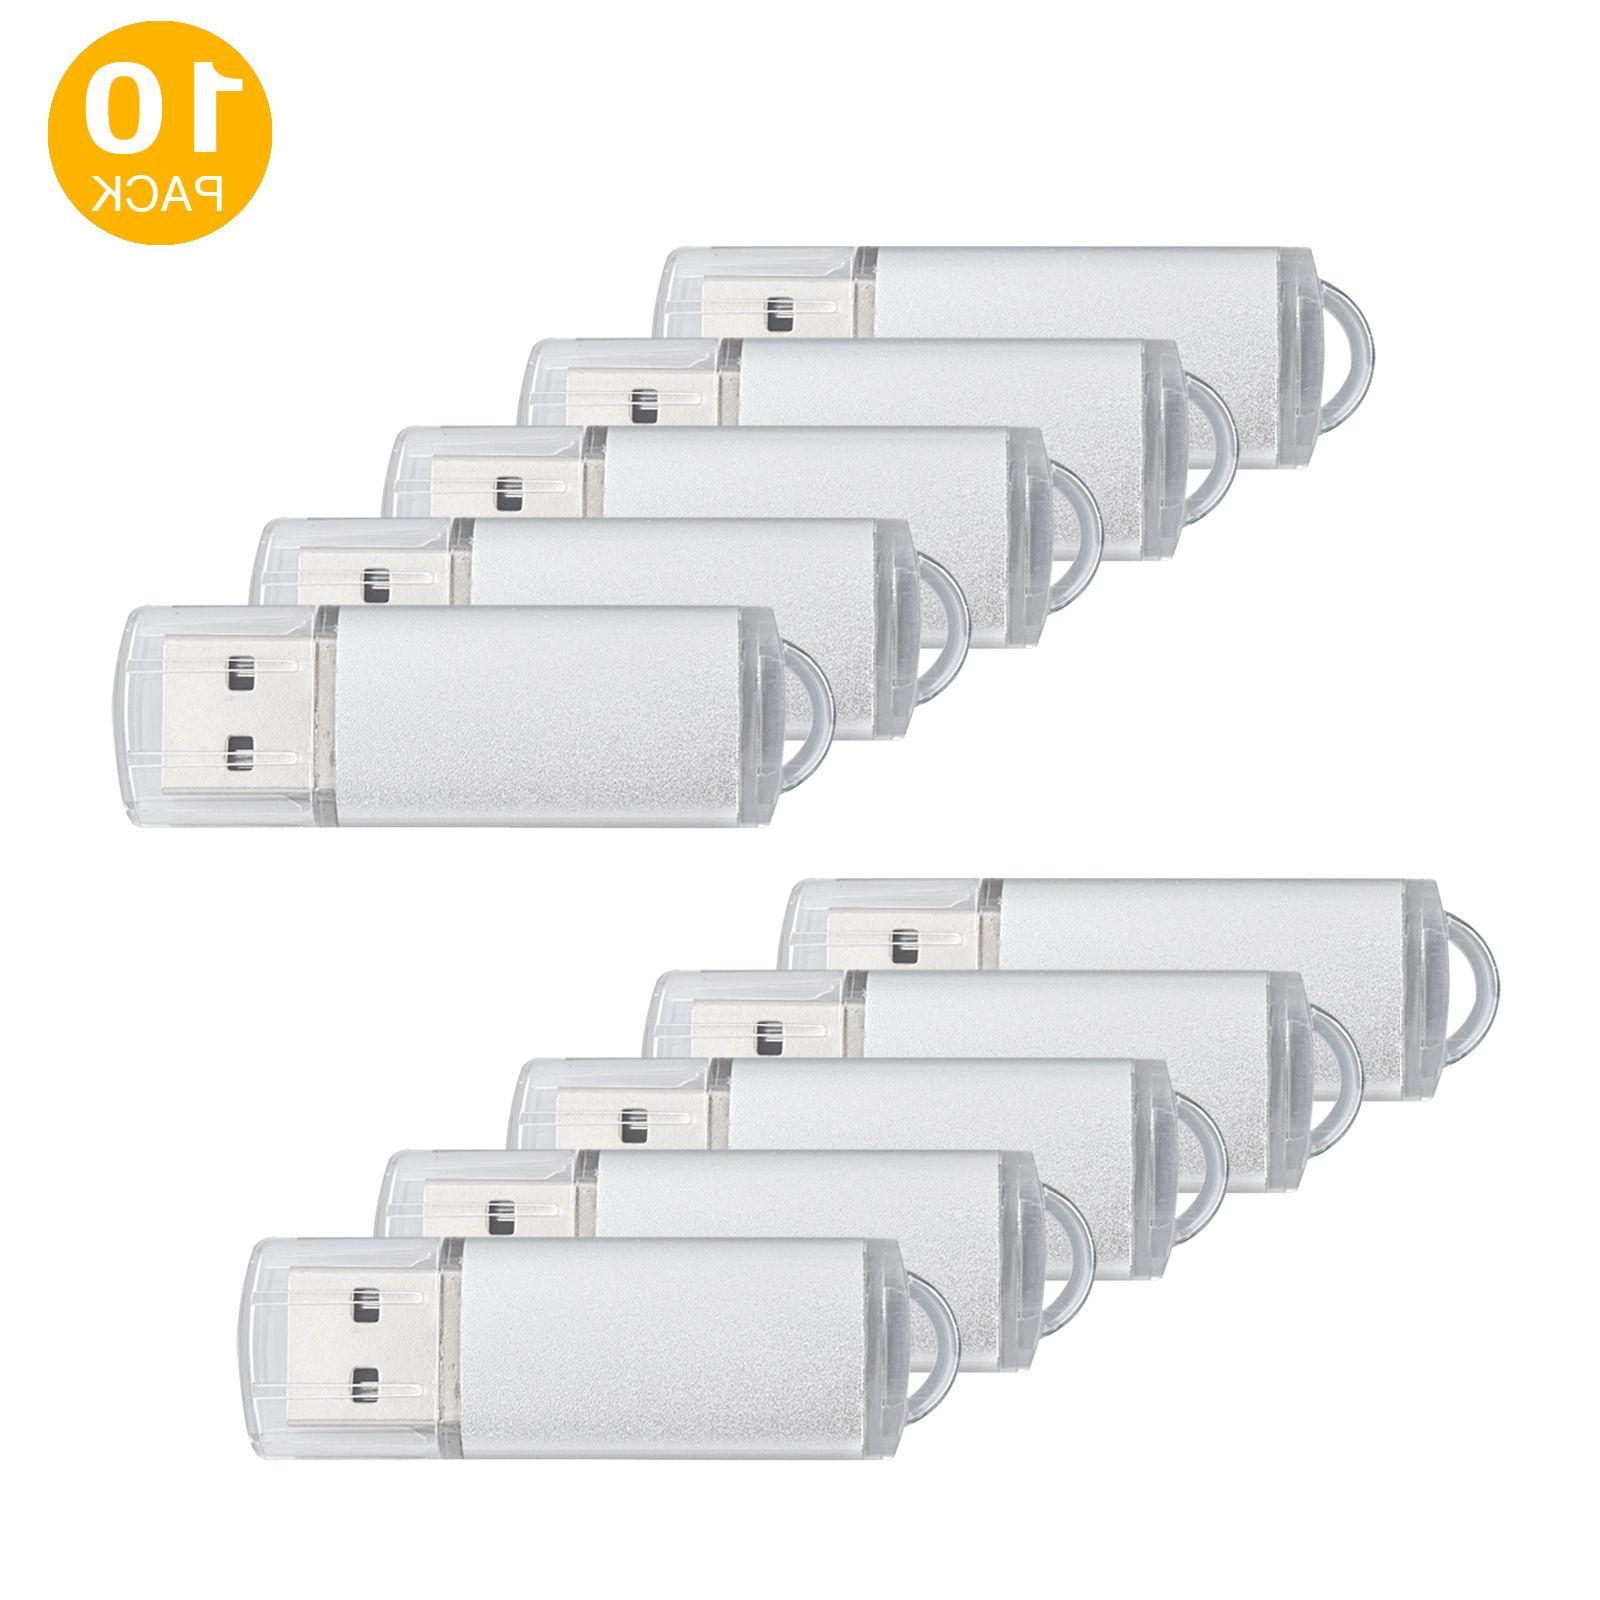 10 Pack 4GB Flash Memory Stick USB 2.0 Flash Drive High Spee